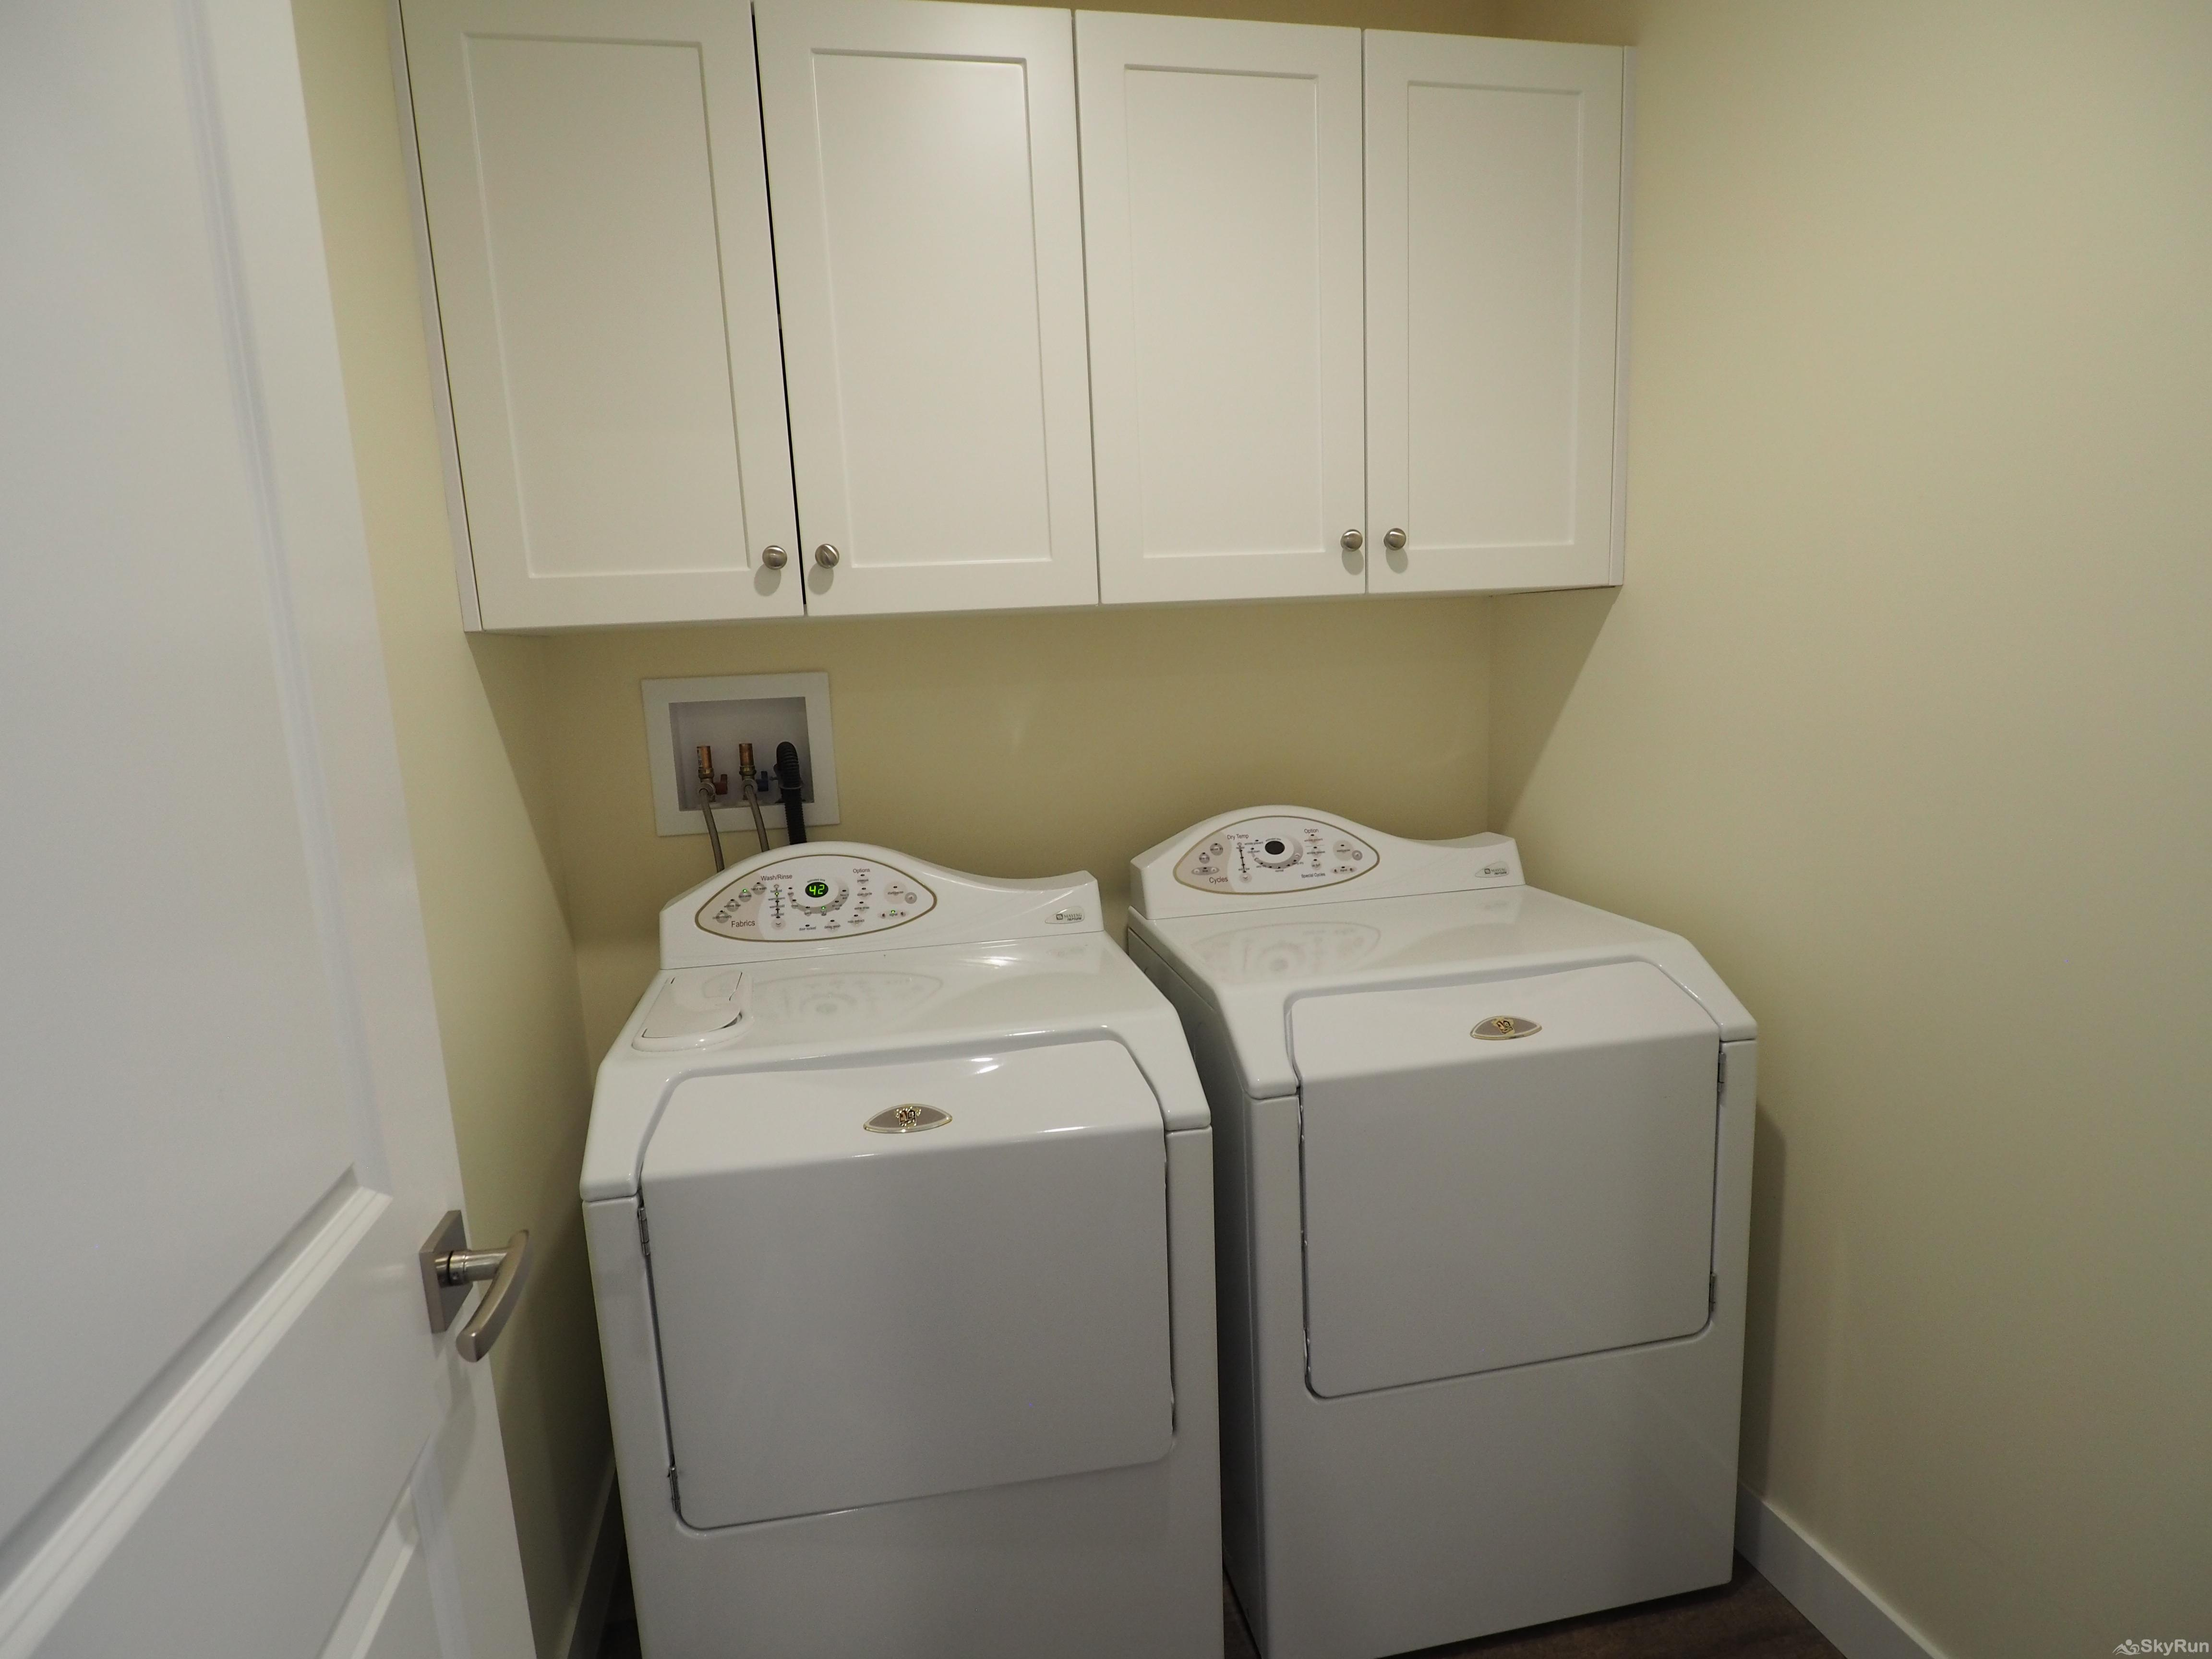 Blue Heron Hide-Away Full sized high efficiency laundry equipment